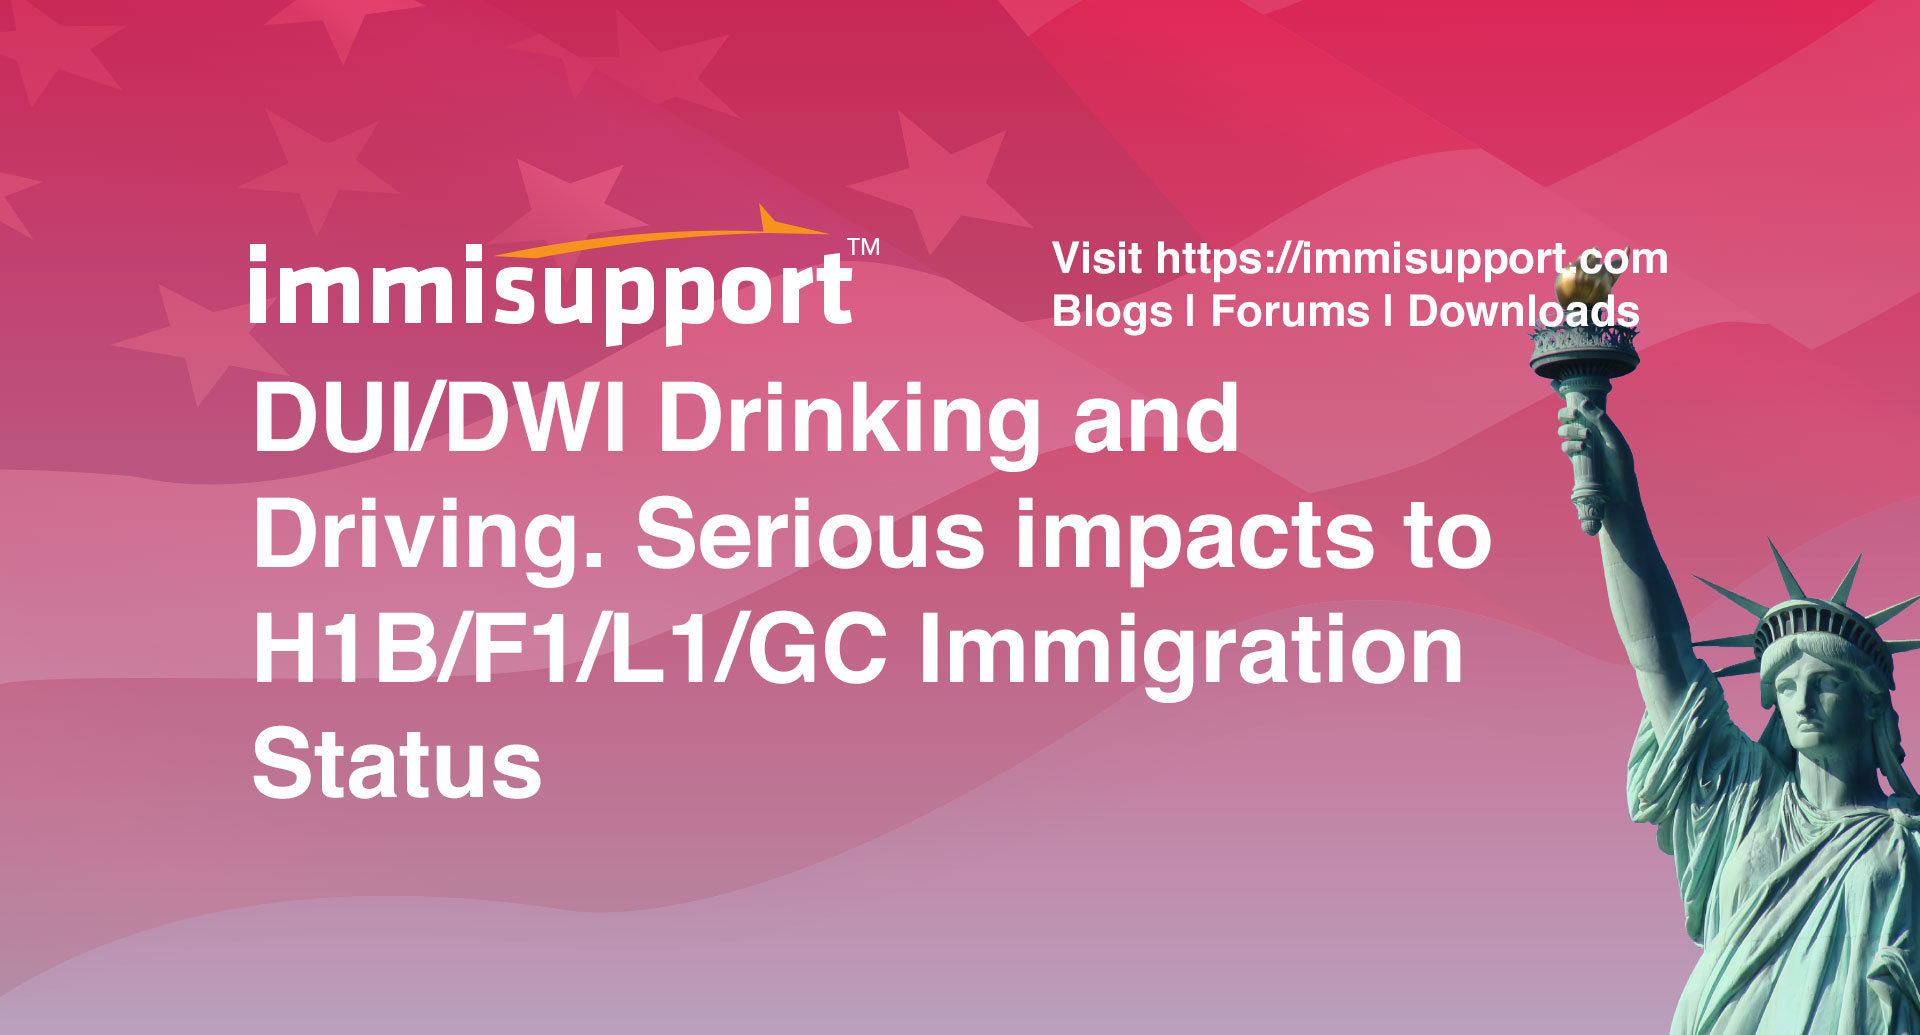 DUI/DWI Drinking and Driving. Serious impacts to H1B/F1/L1/GC Immigration Status